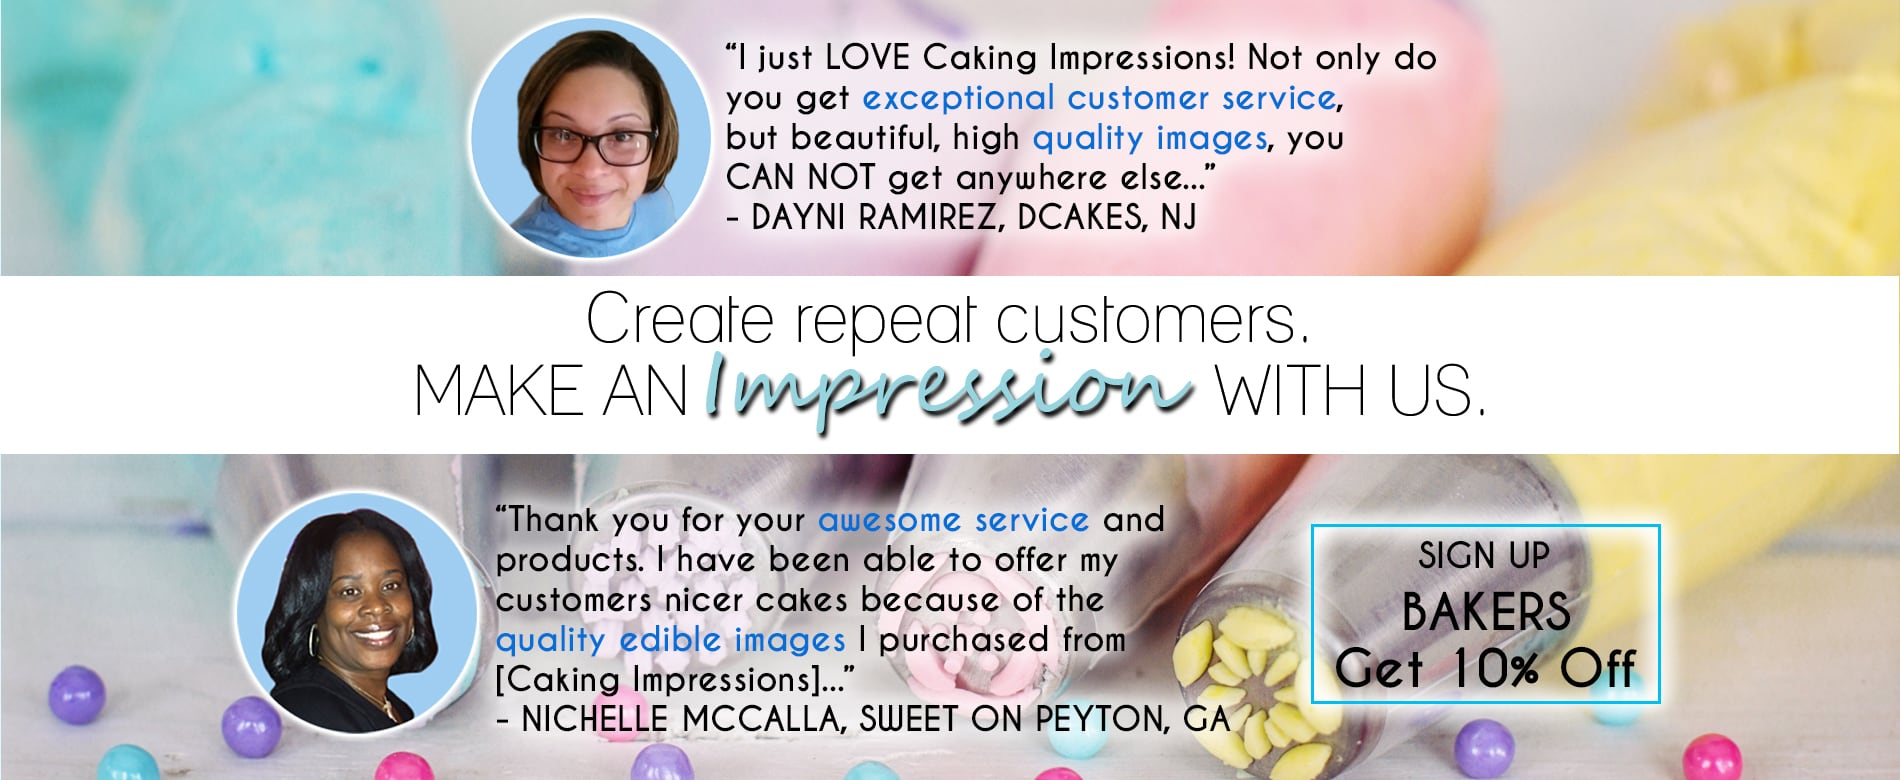 Reviews On Caking Impression